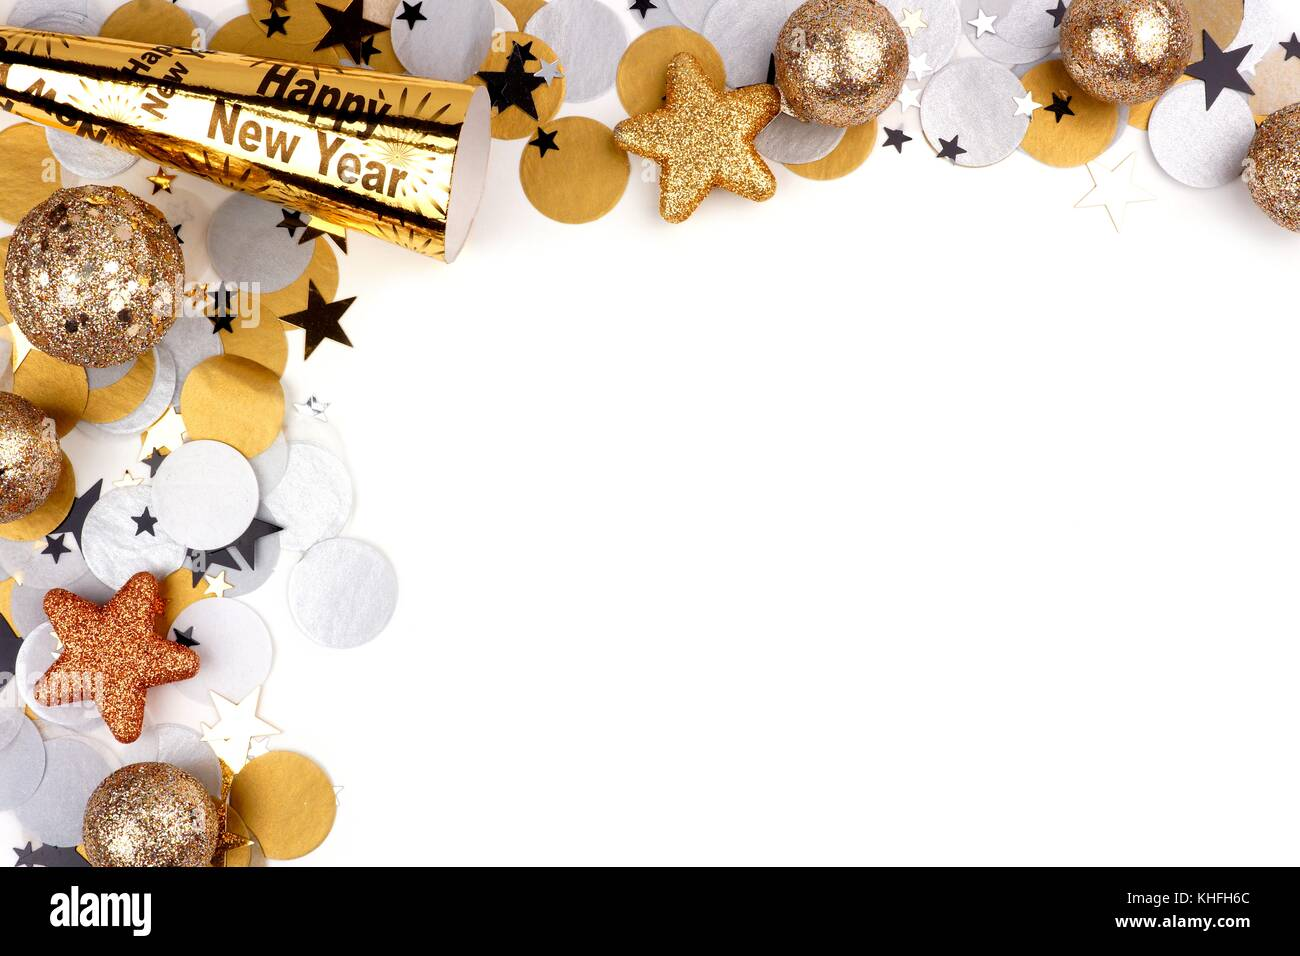 New Years Eve corner border of confetti and decor isolated on a     New Years Eve corner border of confetti and decor isolated on a white  background